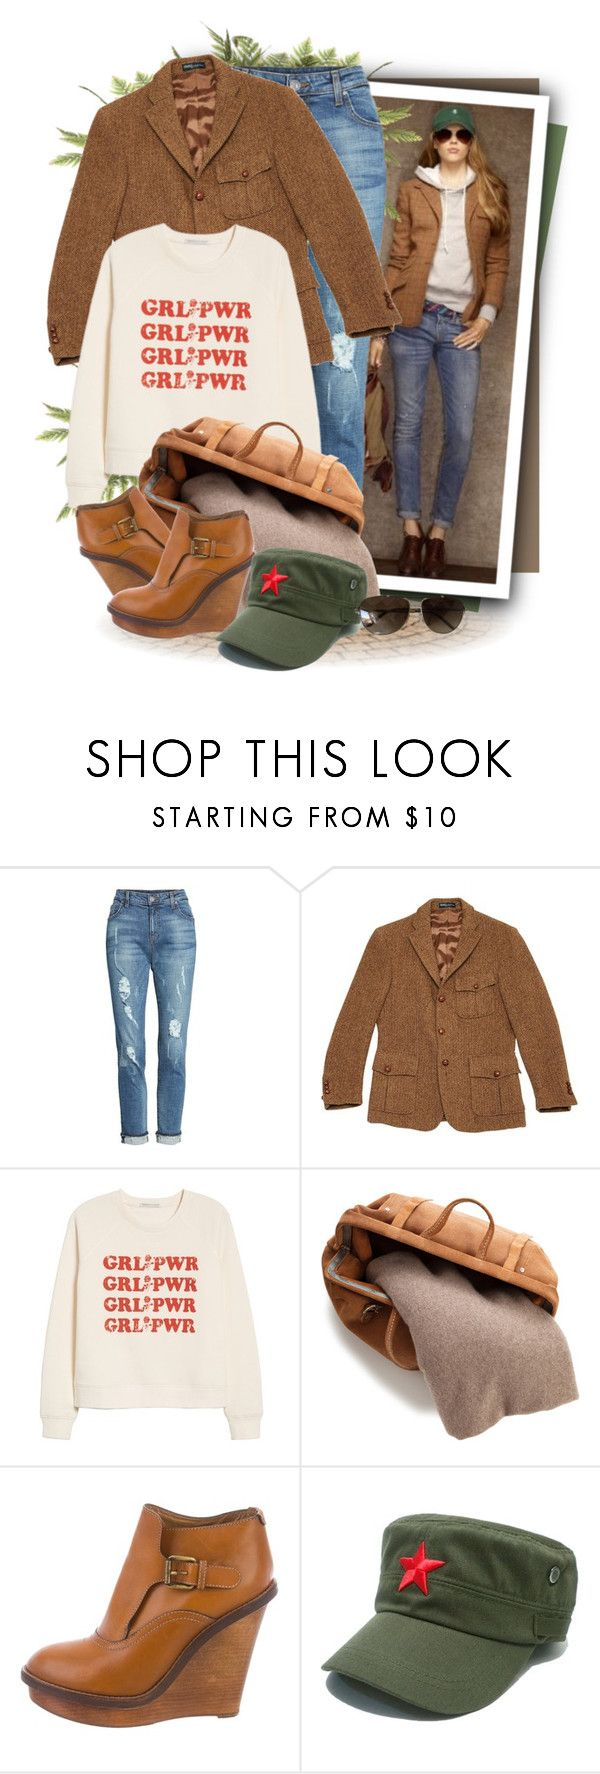 """Feminist"" by tasha1973 ❤ liked on Polyvore featuring KUT from the Kloth, Polo Ralph Lauren, Rebecca Minkoff, White + Warren, Christian Dior, womensHistoryMonth, pressforprogress and GirlPride"